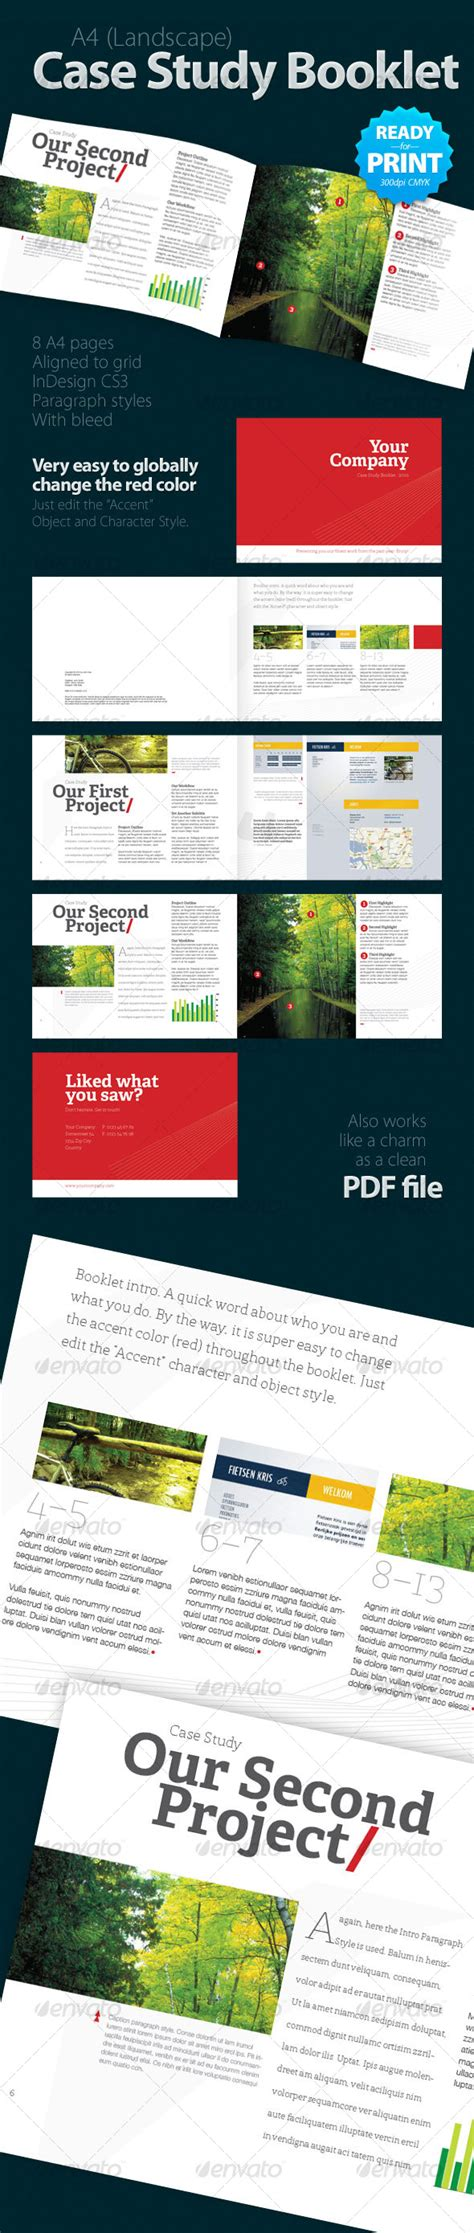 document layout pinterest case study booklet 8 pages by geertdd graphicriver